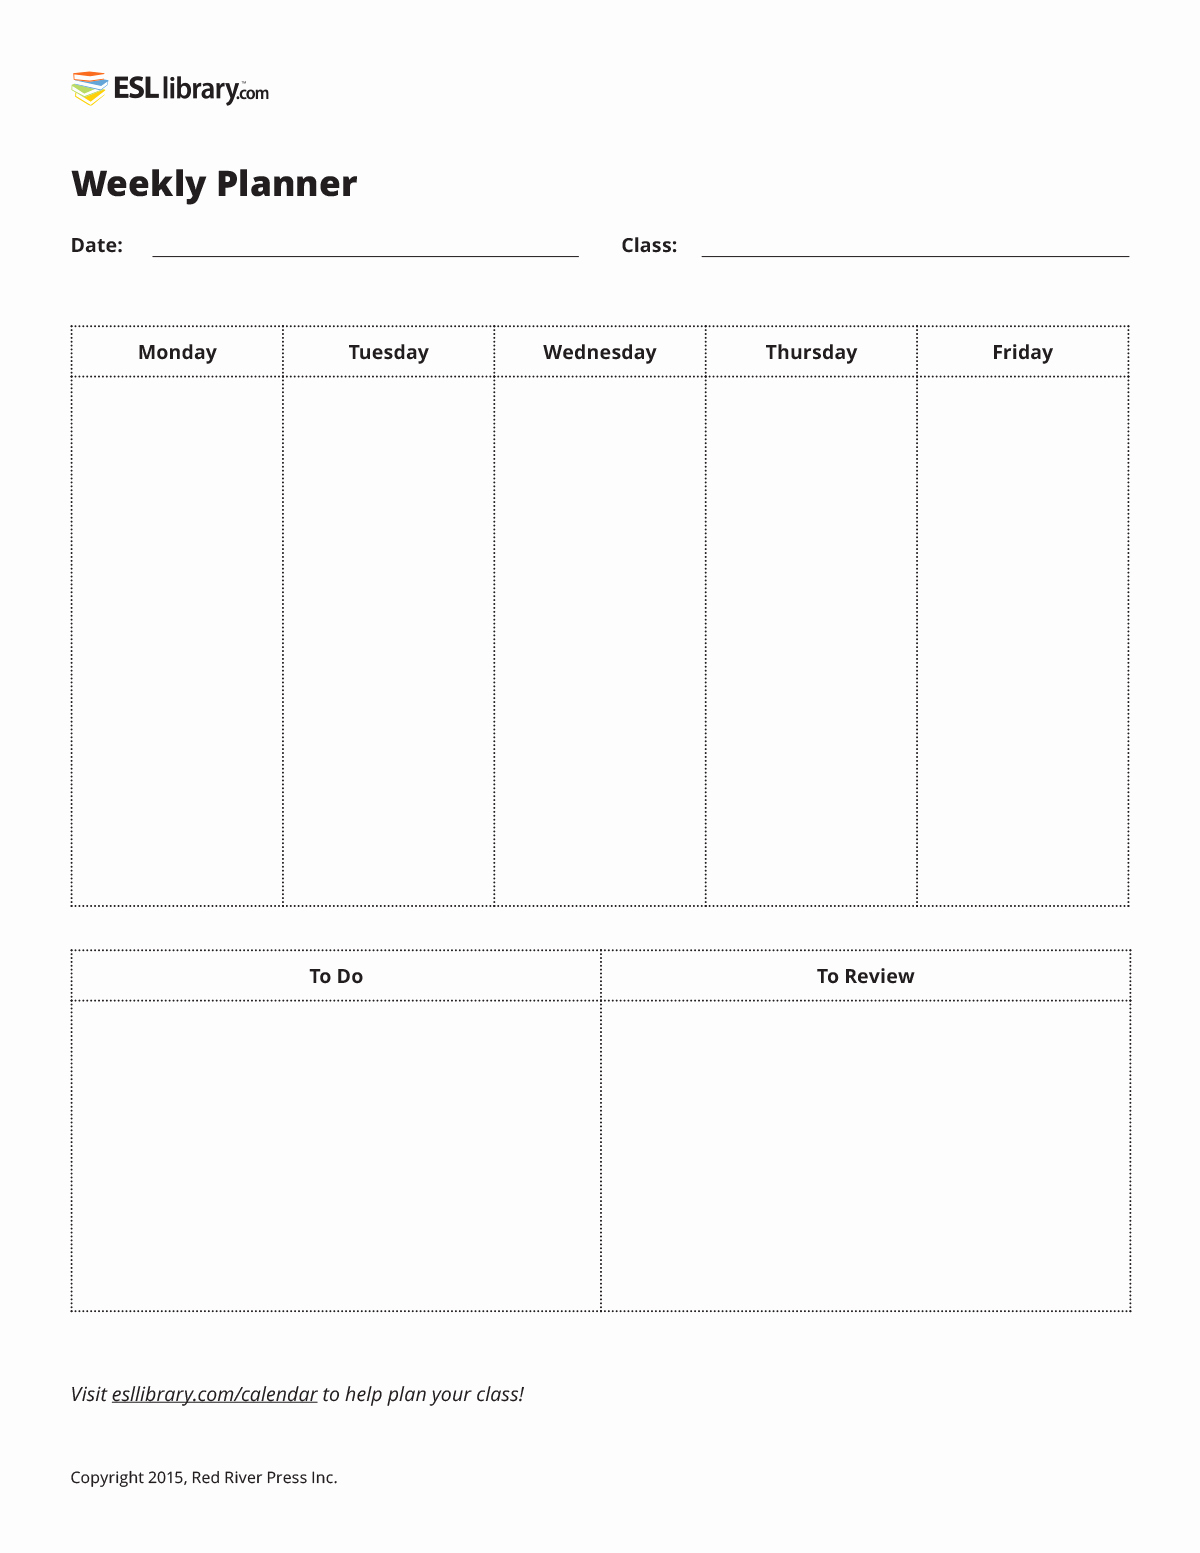 Weekly Planner Template for Teachers Elegant Lesson Planning tools & Tips for Teachers – Esl Library Blog